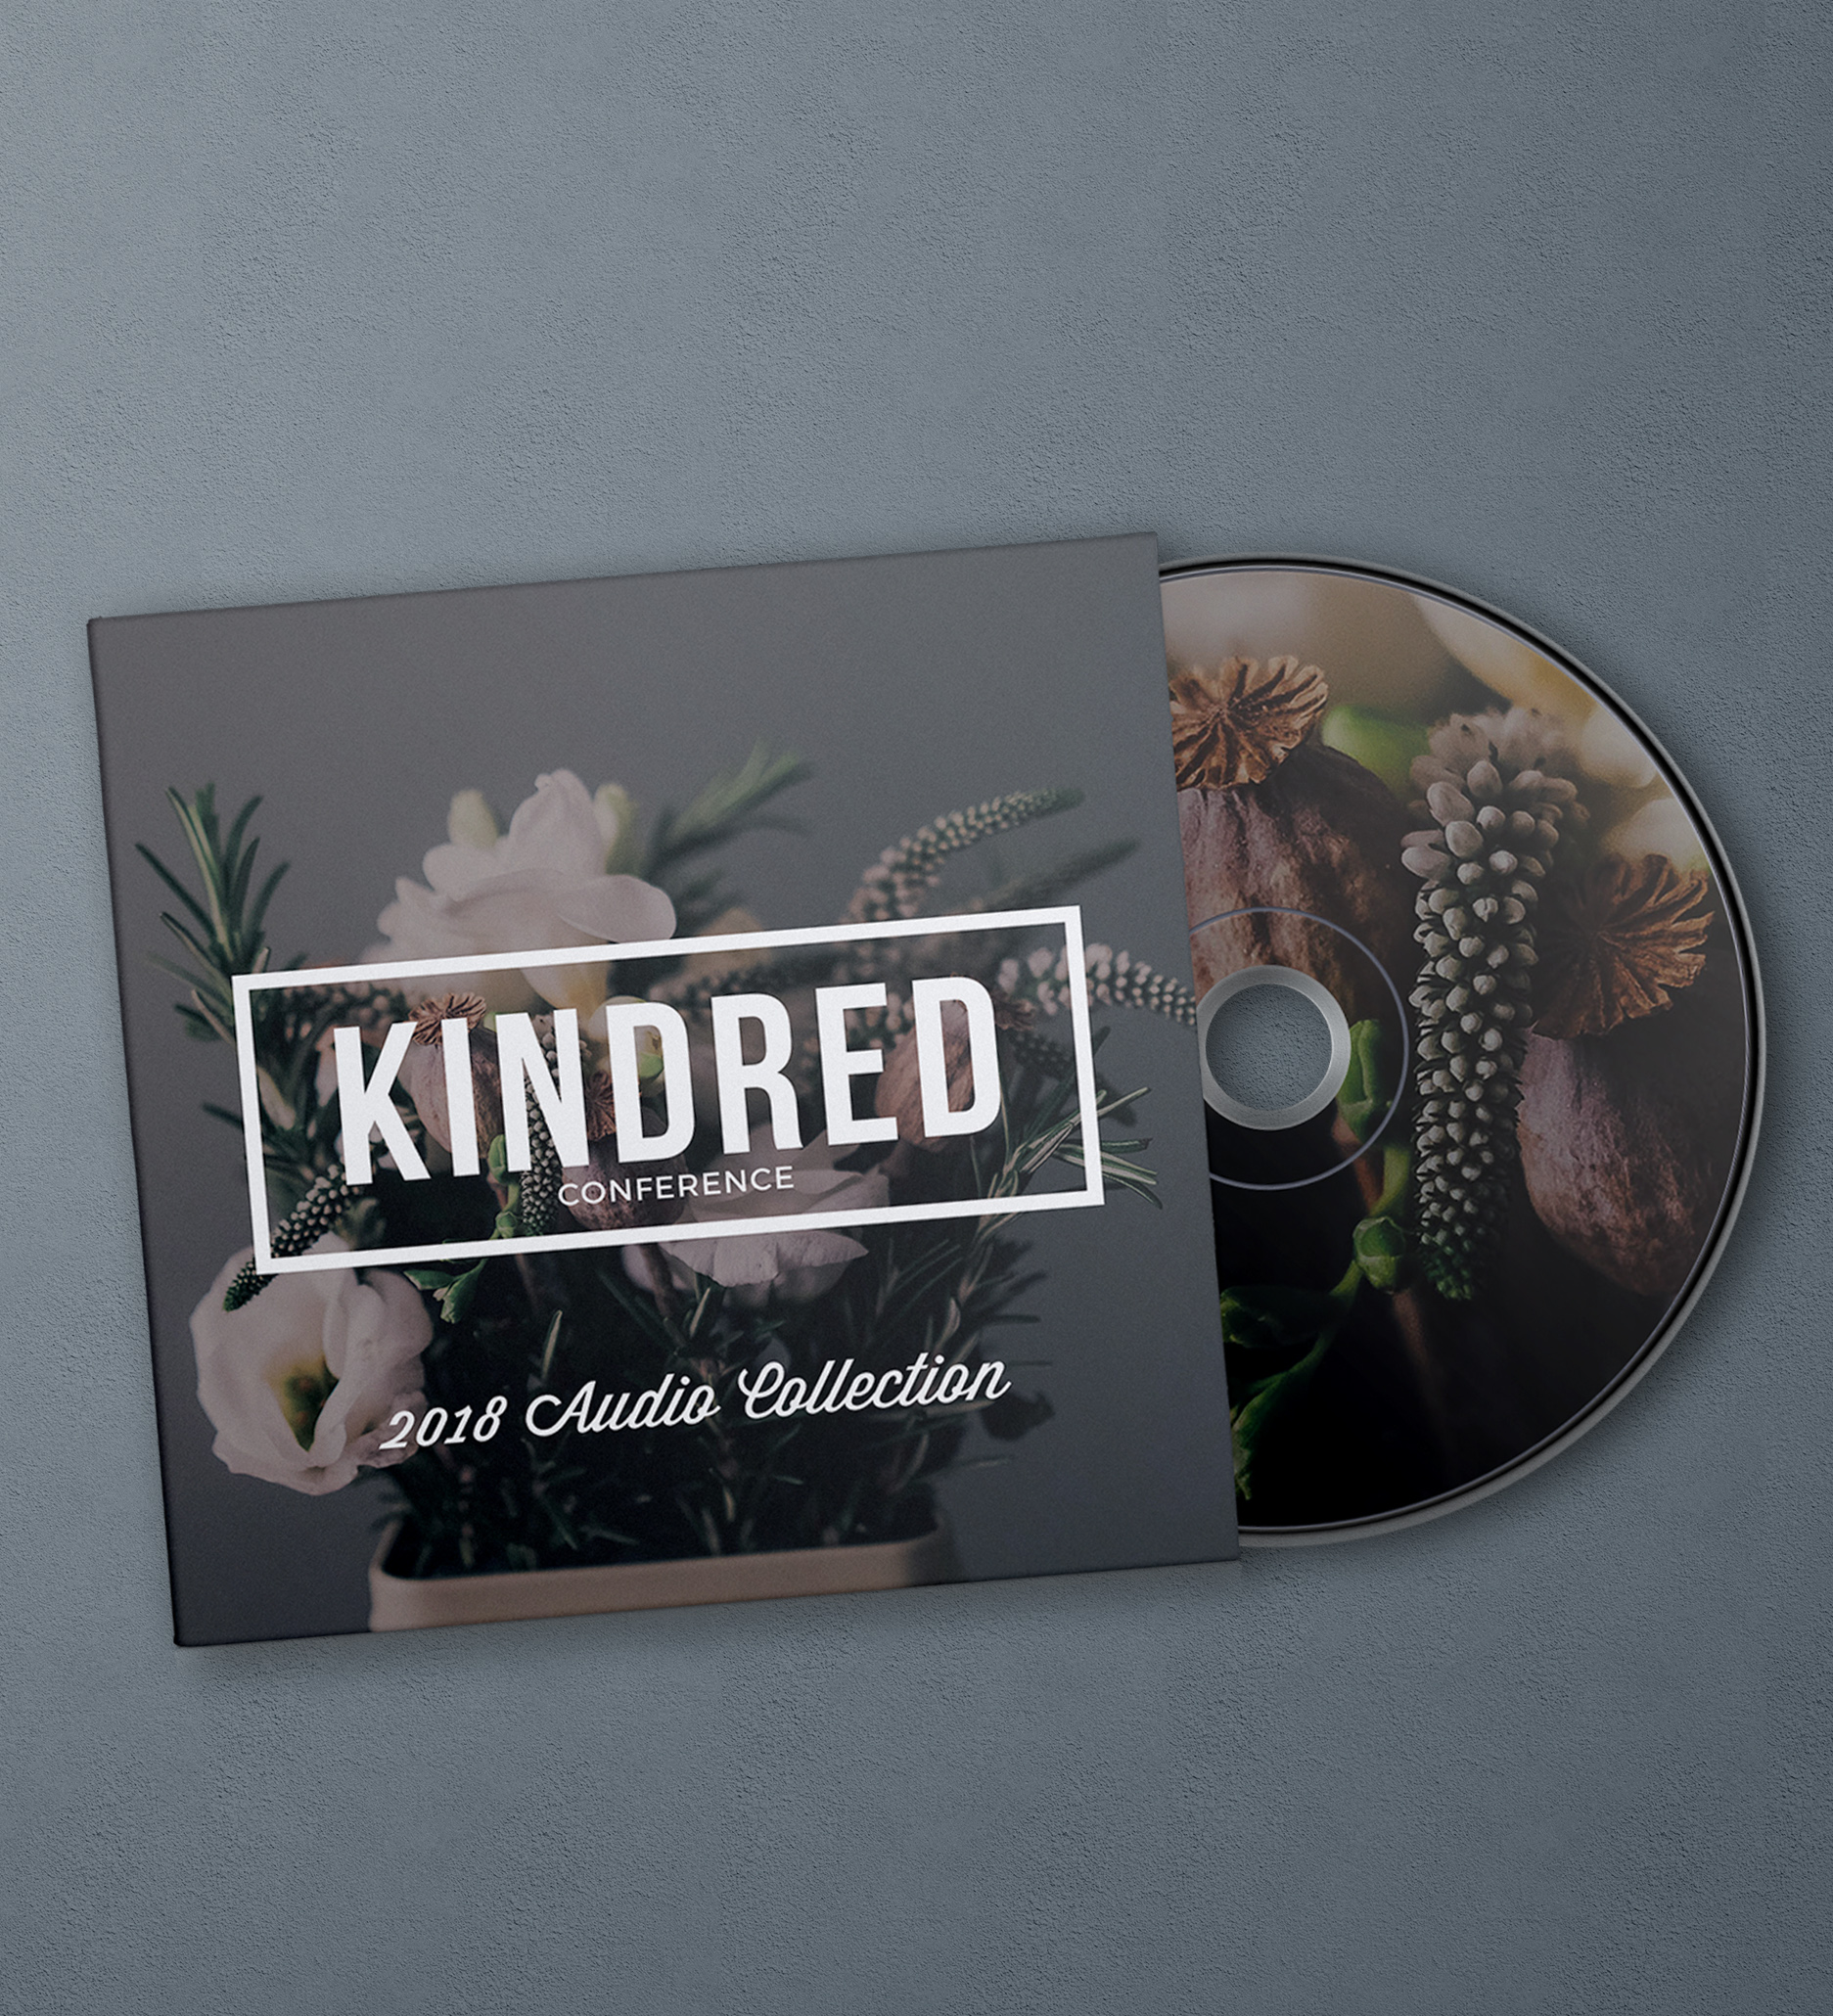 2018 Kindred Conference Audio Collection (Disc)